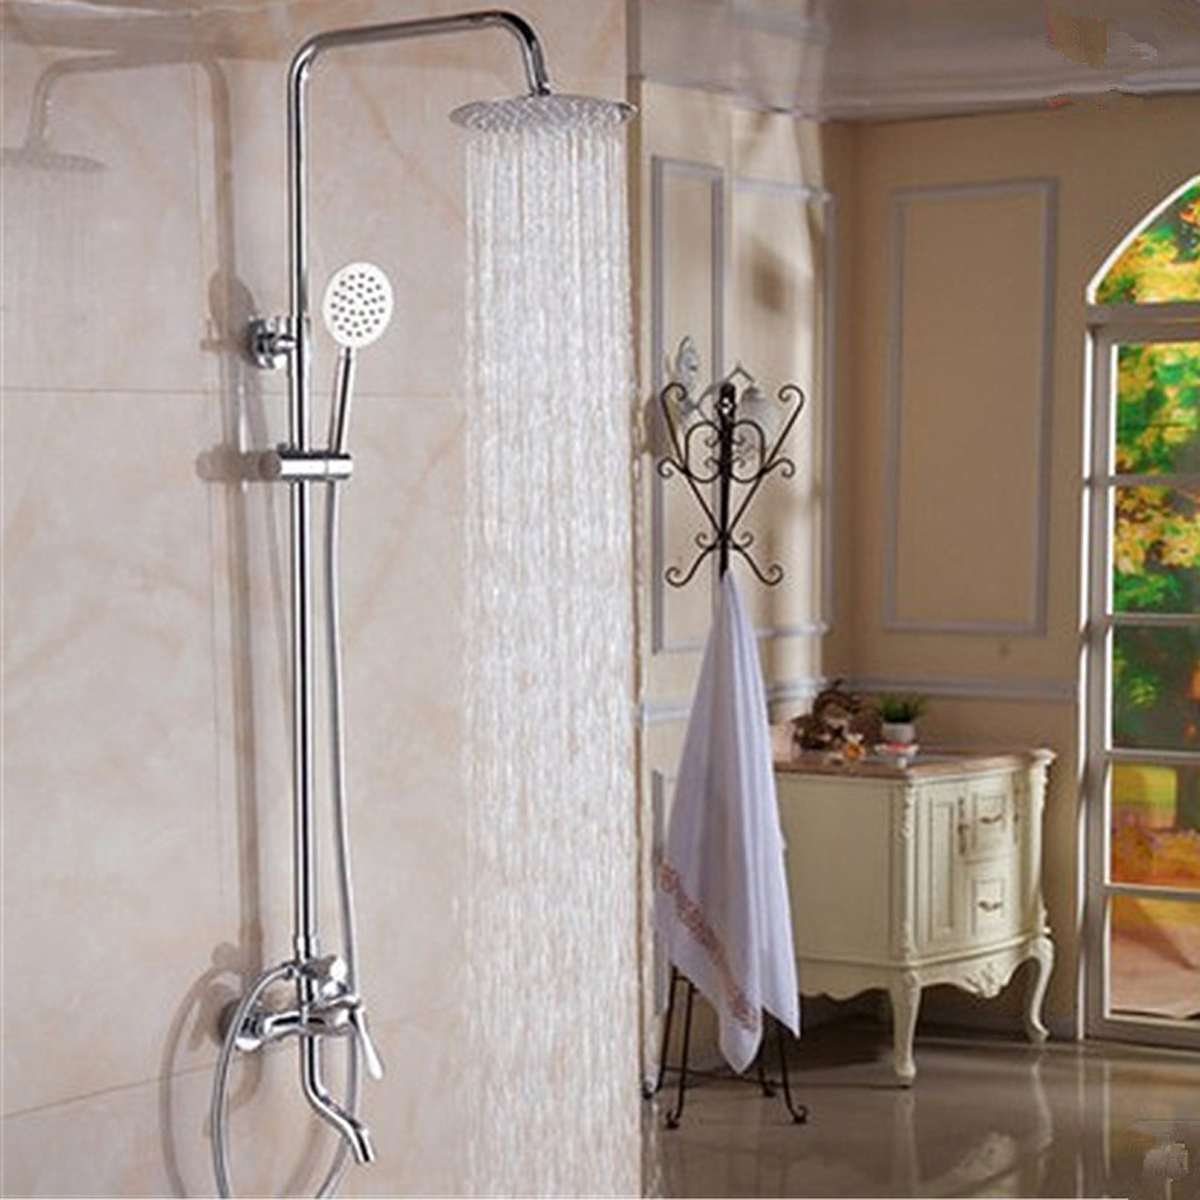 8inch Chrome Brass Polished Rainfall Shower Faucet Set